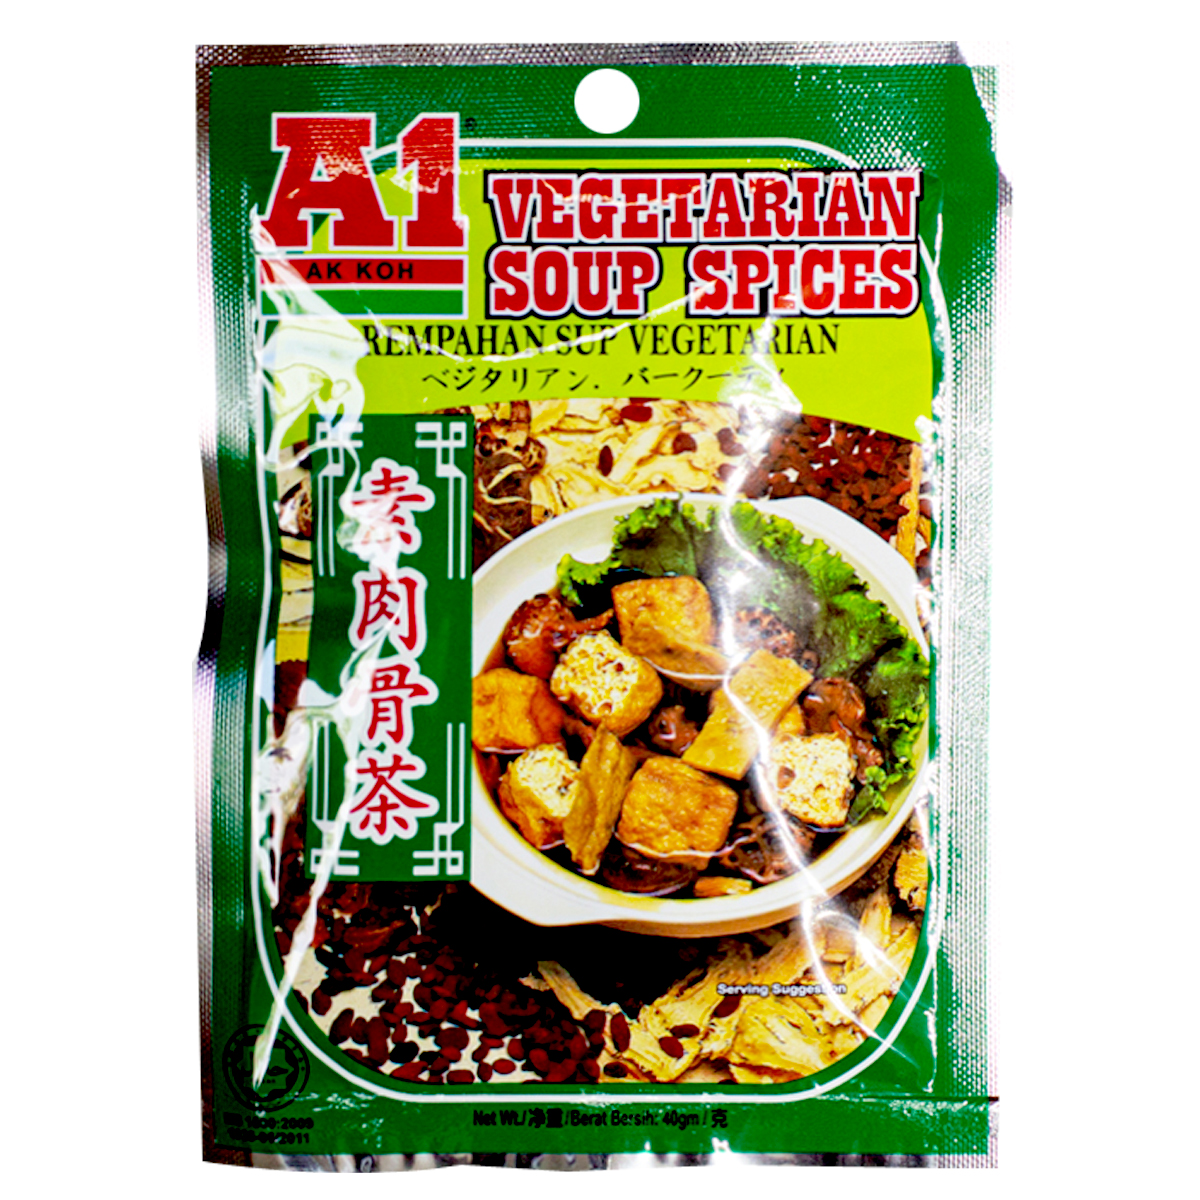 Image Herbal A1 Vegetarian Soup Spices A1-素肉骨茶 40grams